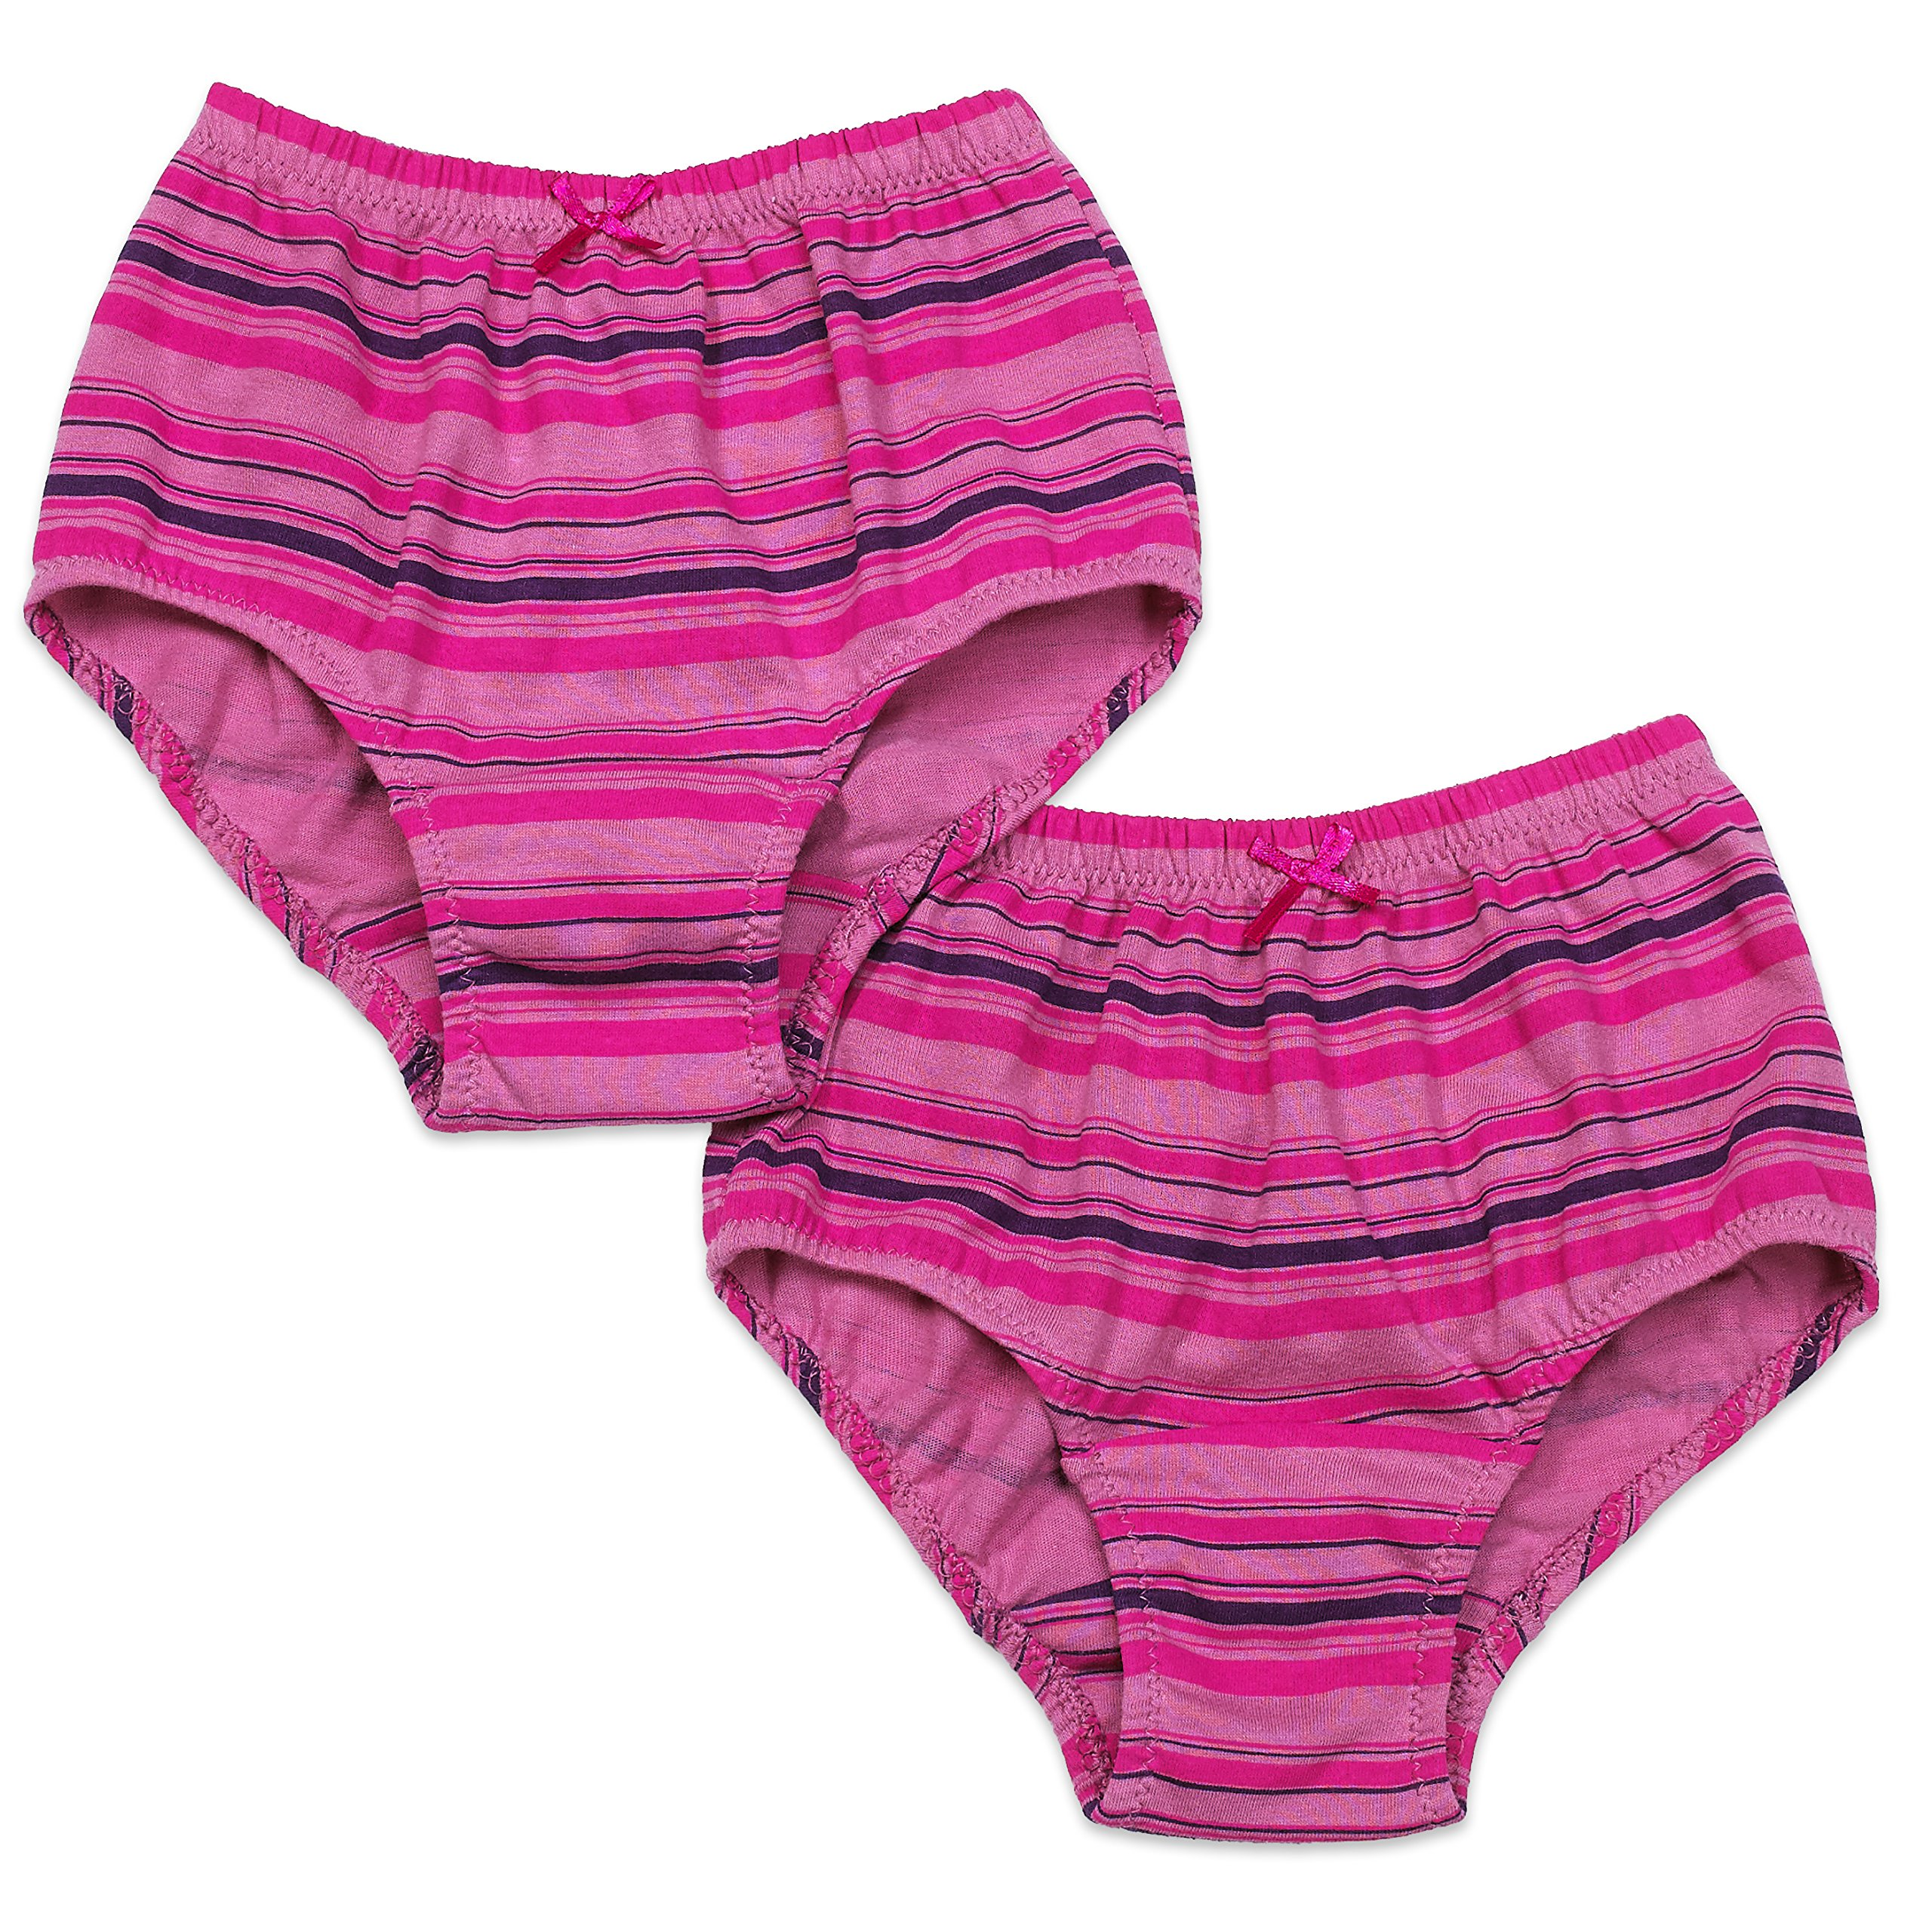 Key Chain Girl's Underwear (2 Per Pack) - Briefs Cut Panties with Tagless Waistband